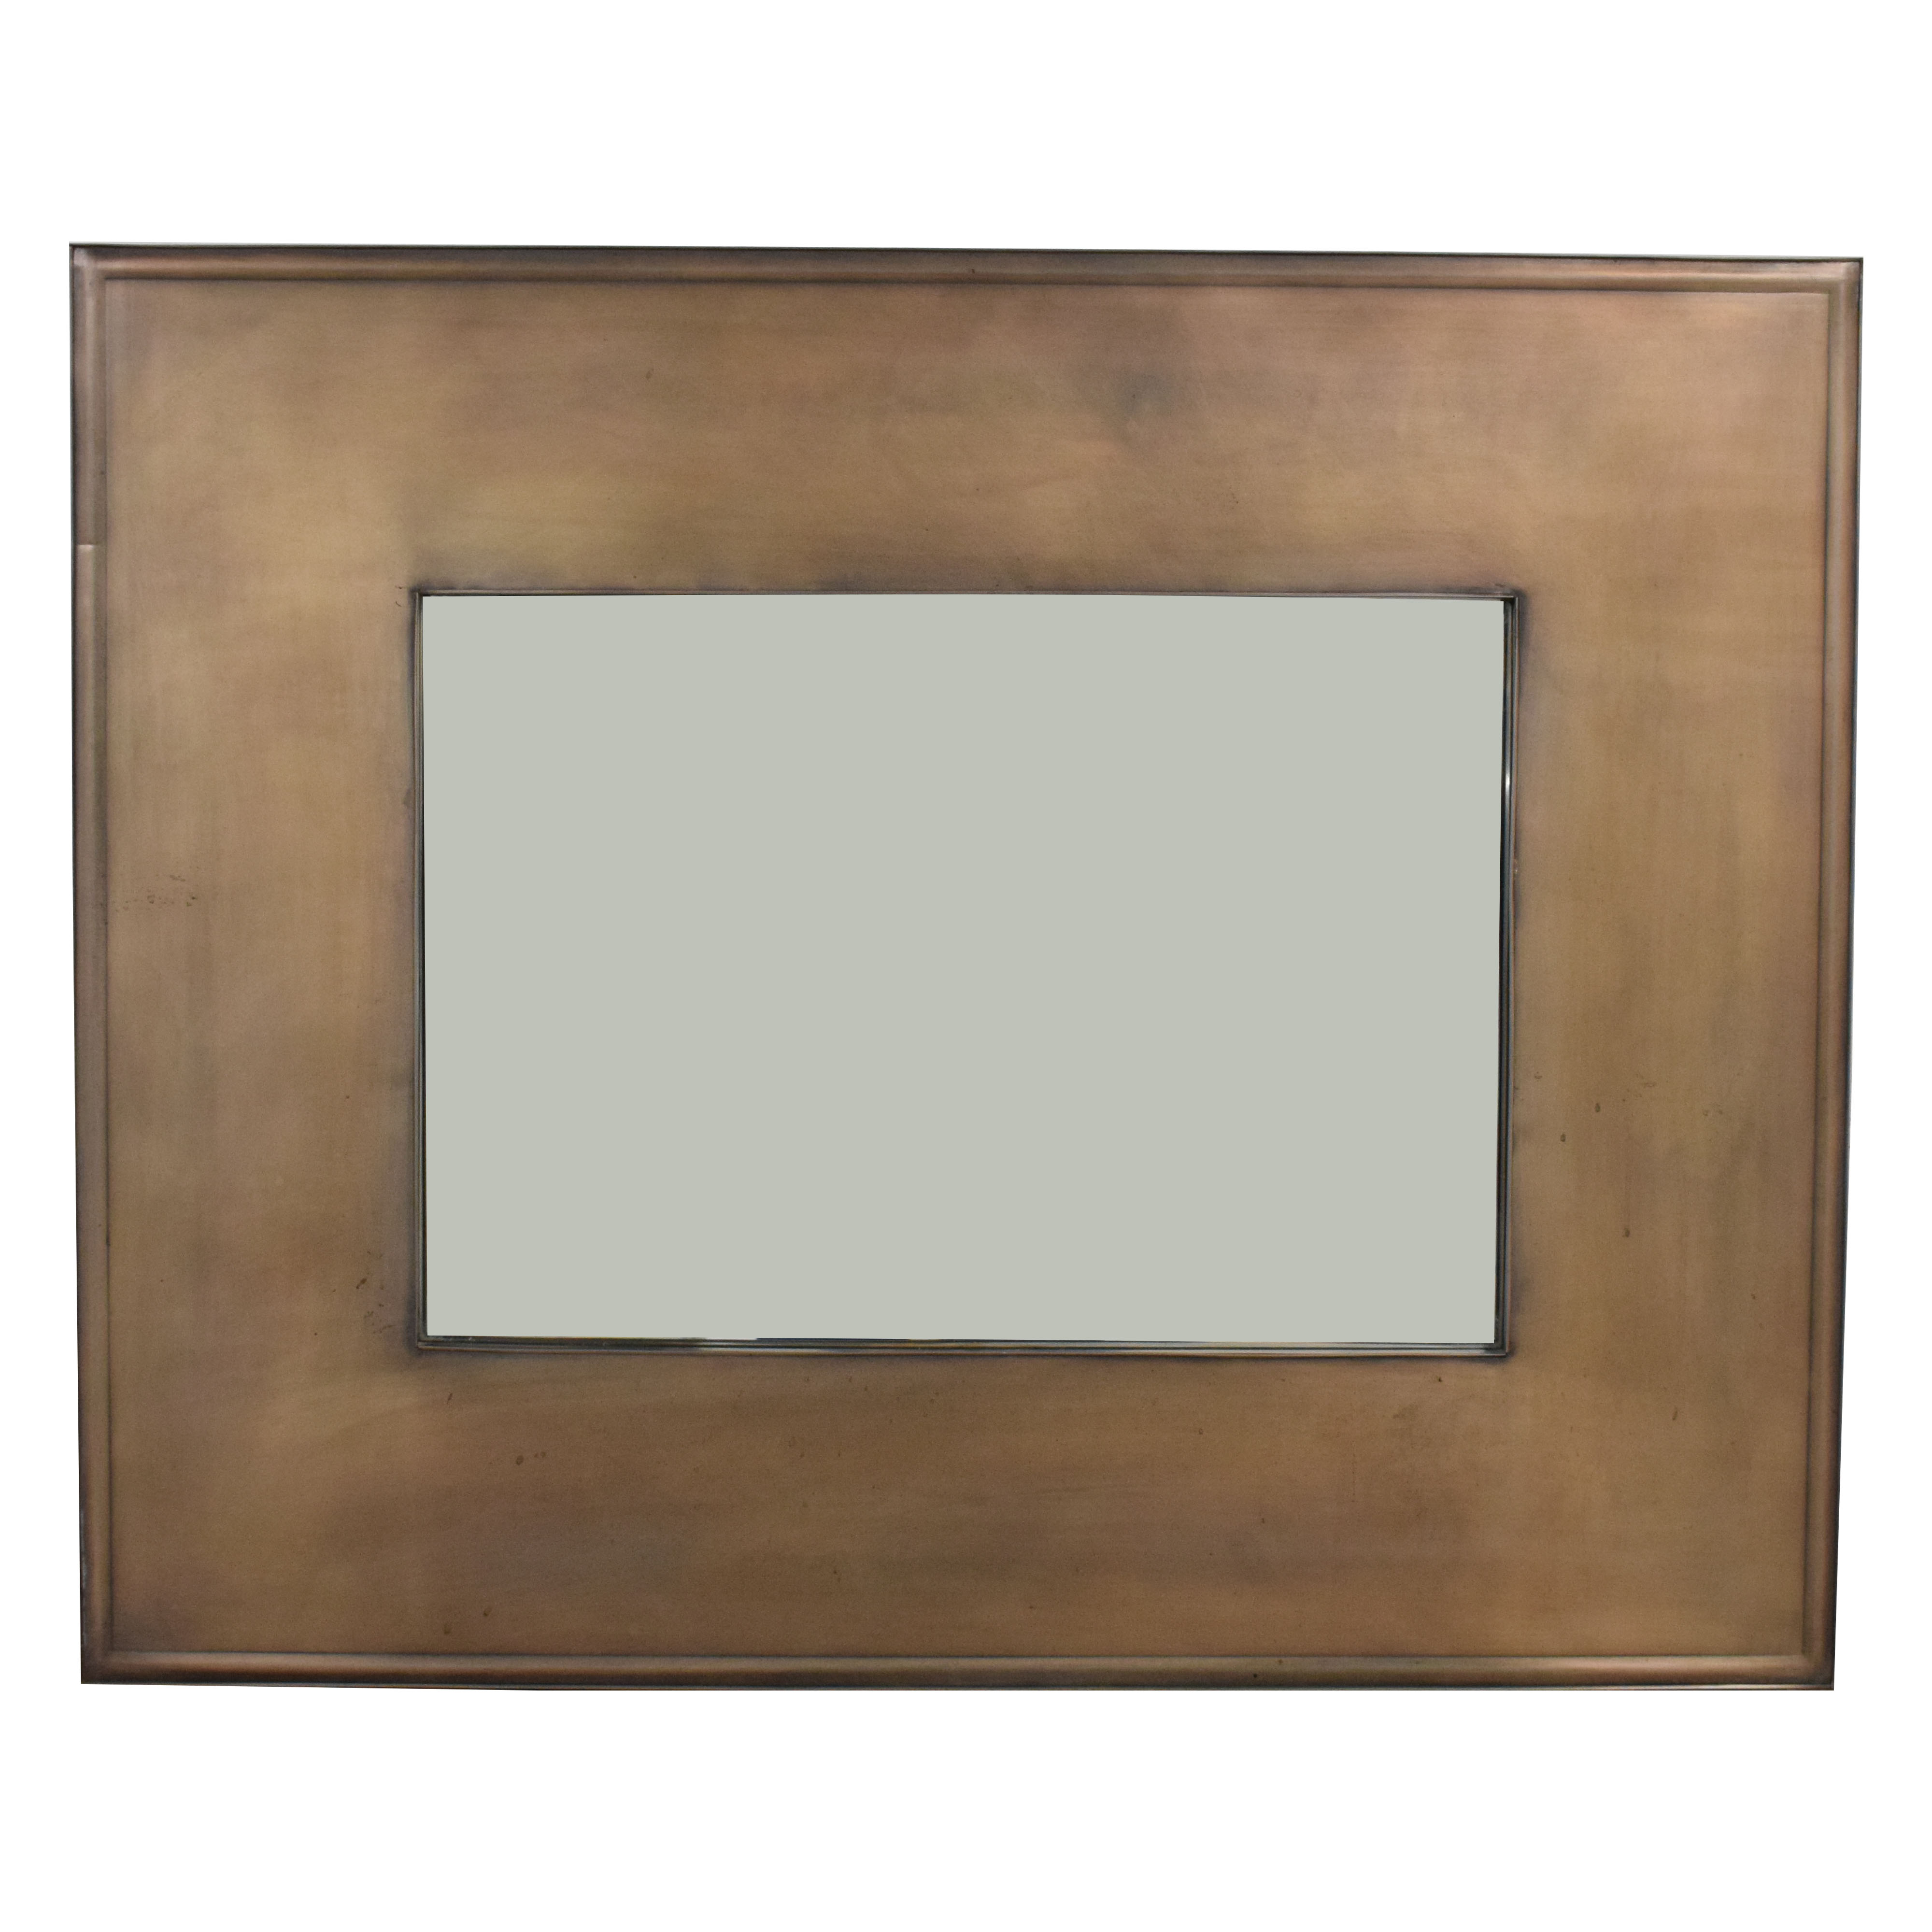 buy Crate & Barrel Crate & Barrel Antique Bronze Mirror online